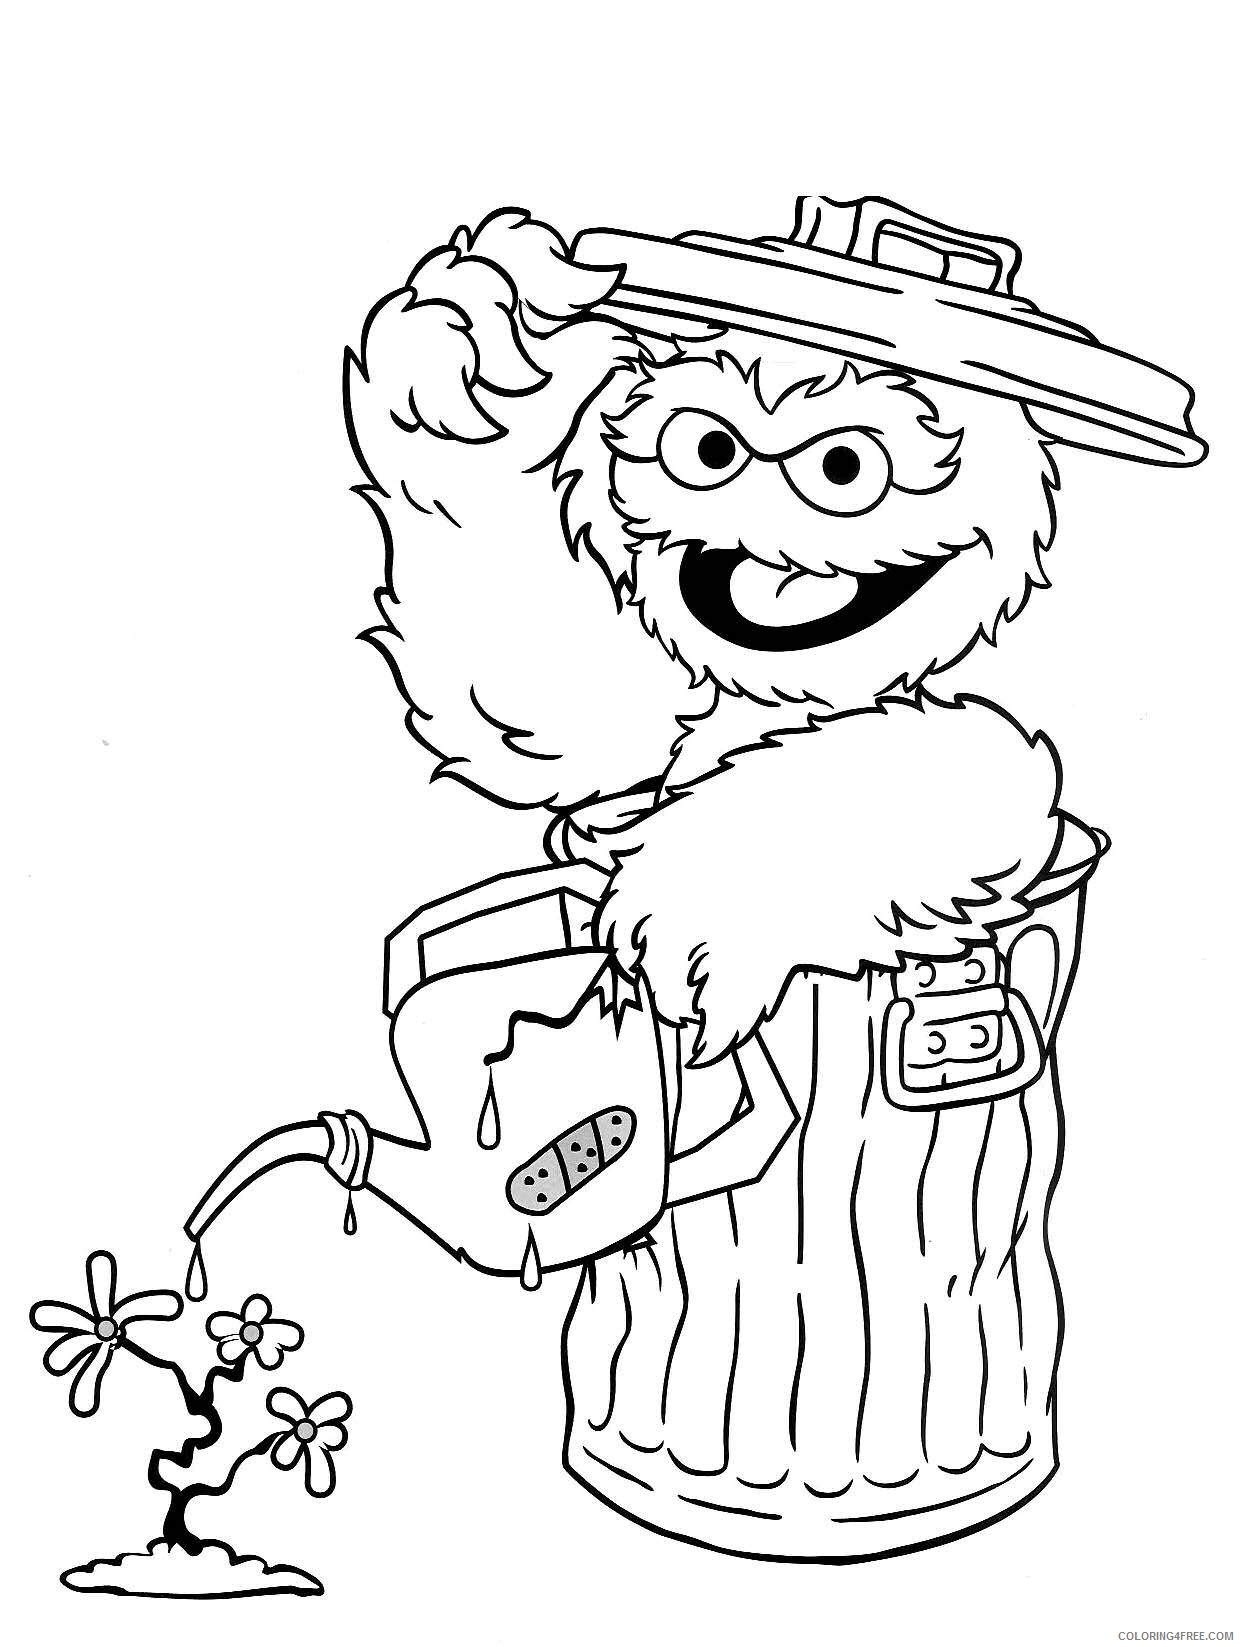 Sesame Street Coloring Pages TV Film Elmo Printable 2020 07445 Coloring4free